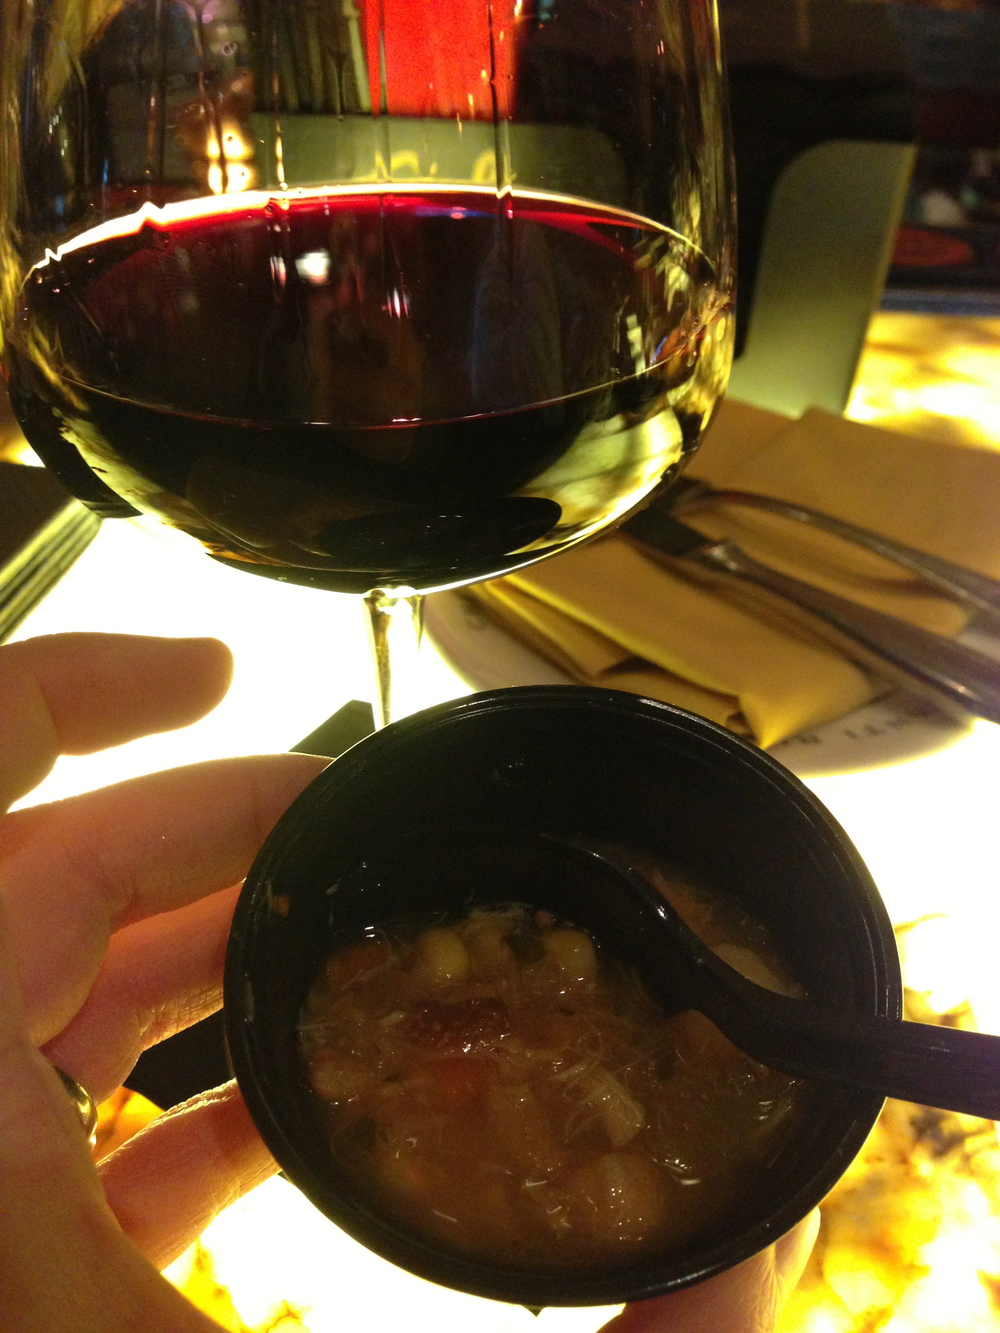 wine & chowder... not the worst pairing I've had...